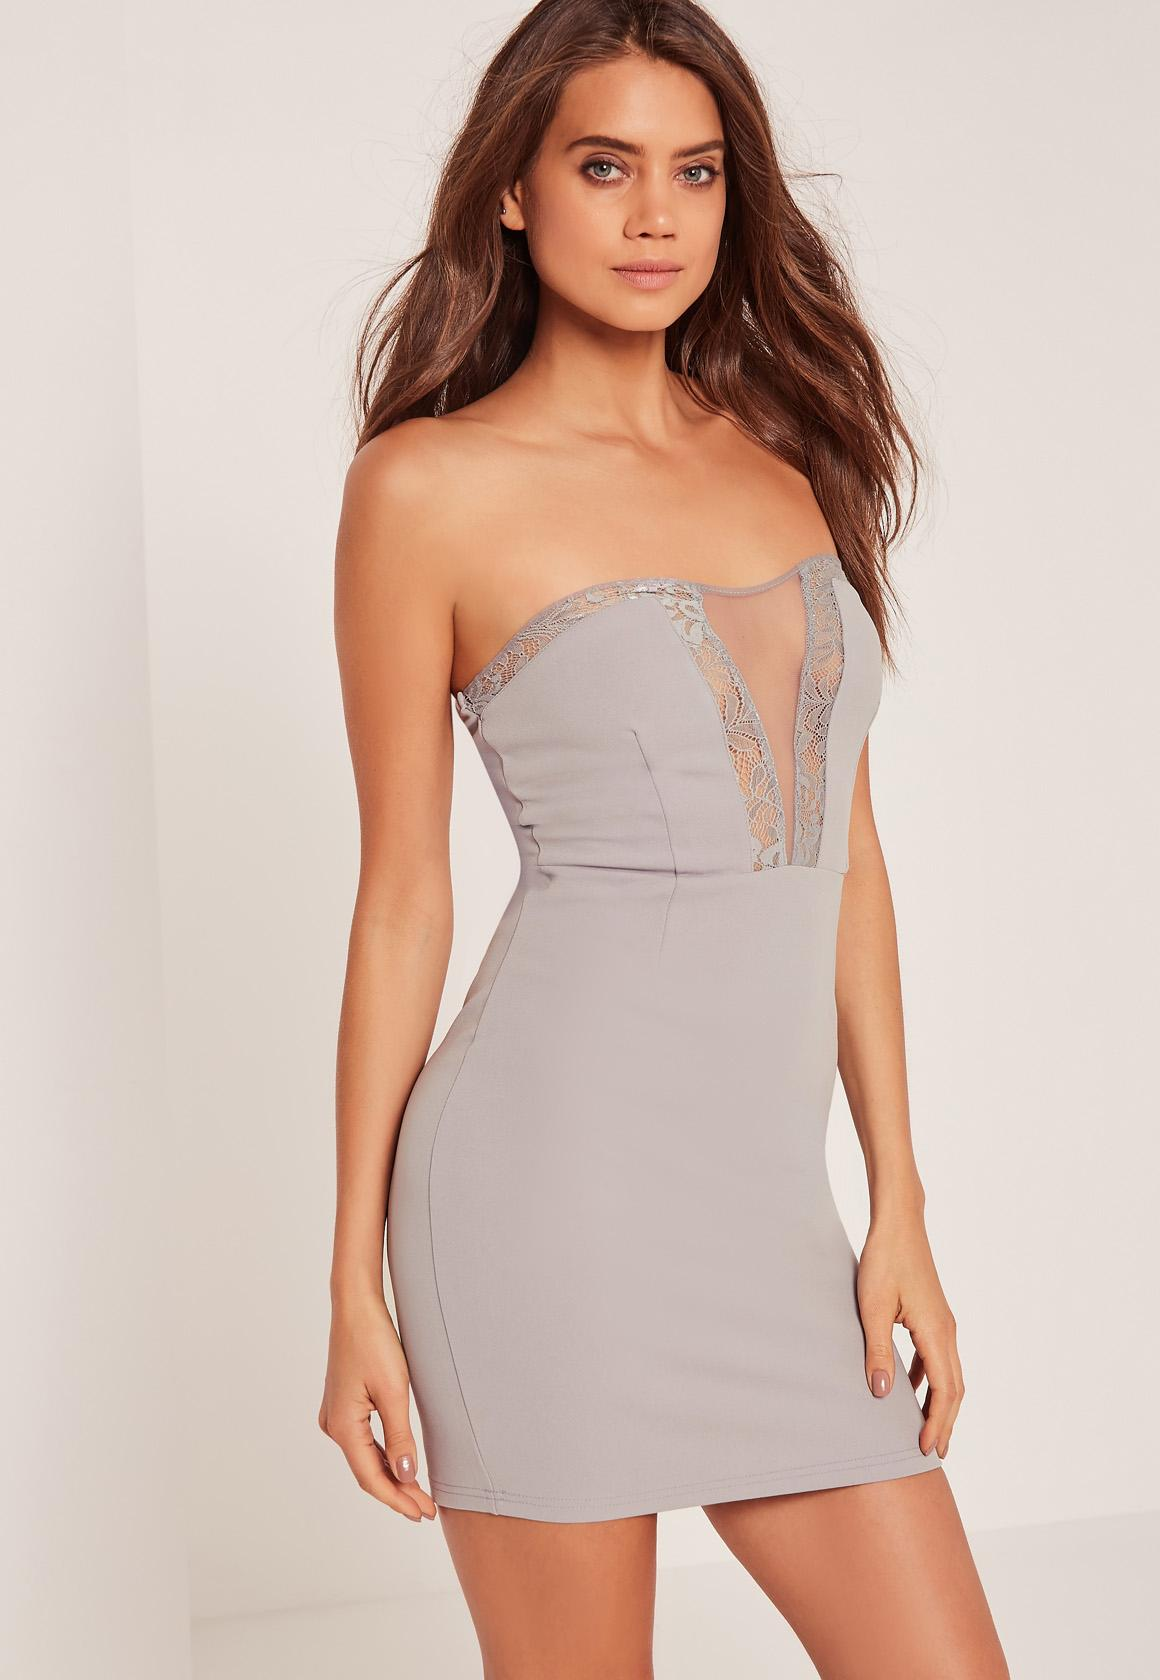 Strapless Dress - Bandeau Dresses | Missguided